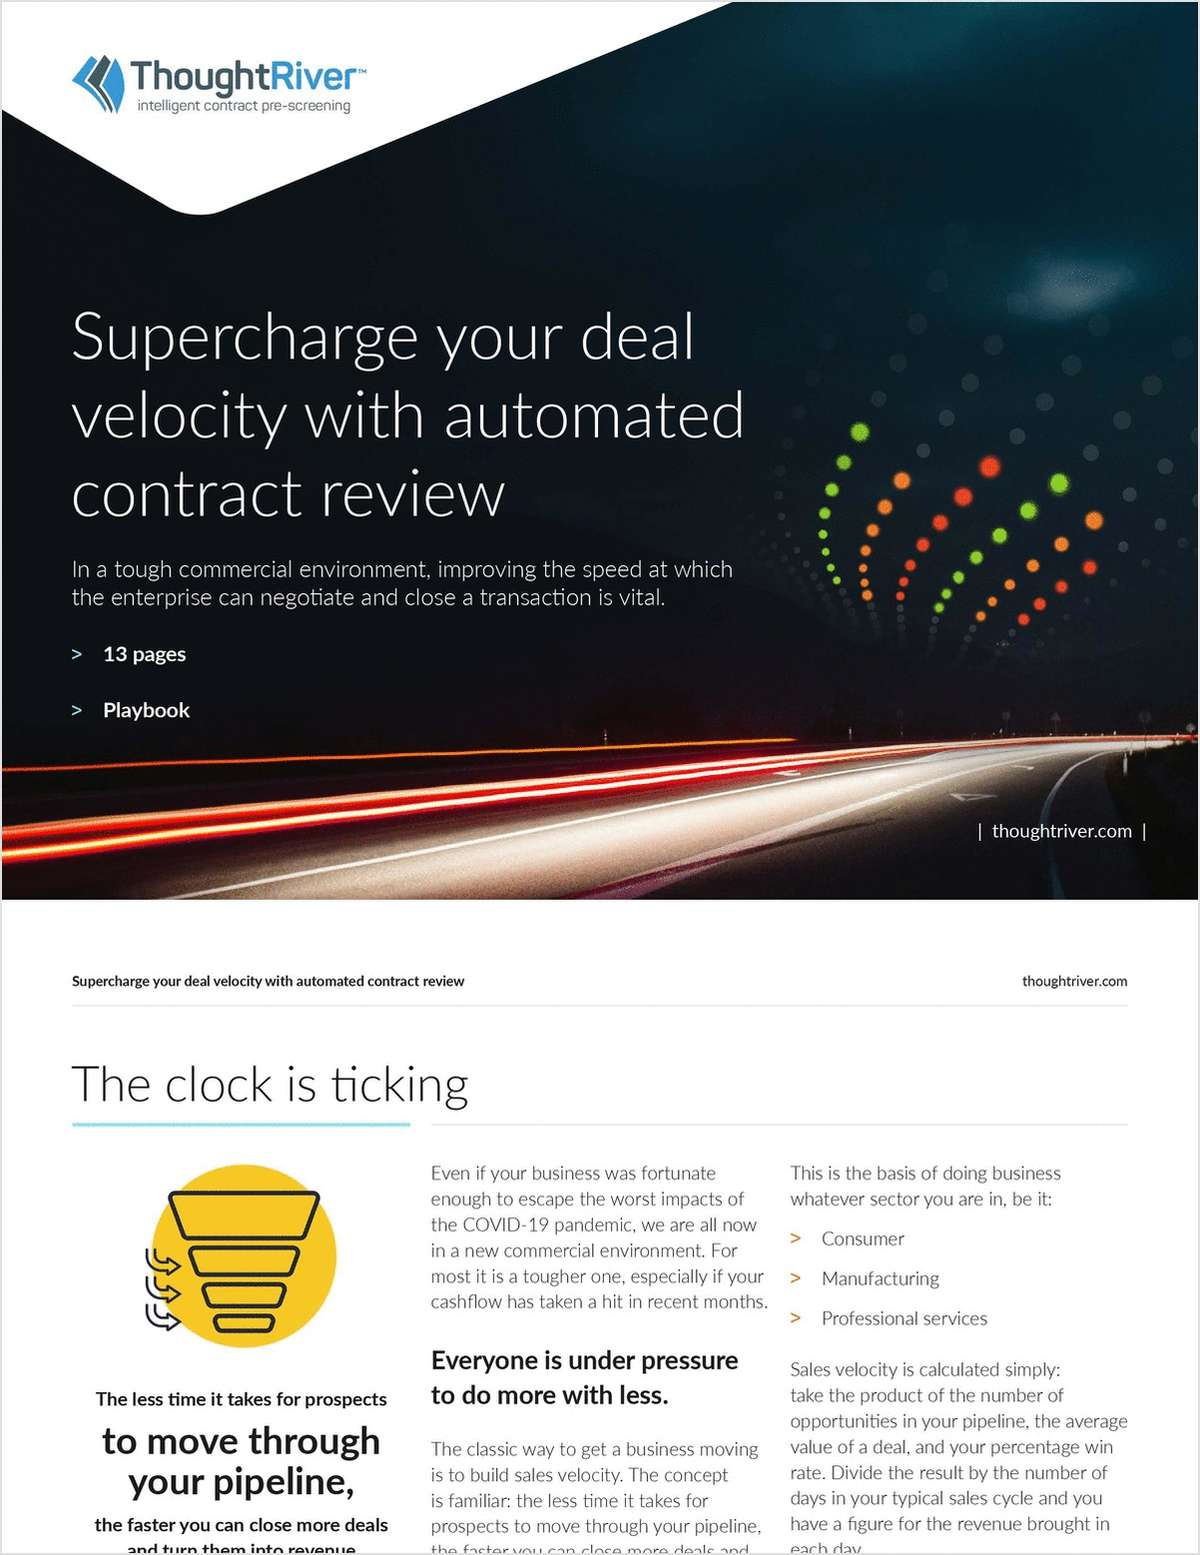 Supercharging Your Deal Velocity with Automated Contract Review